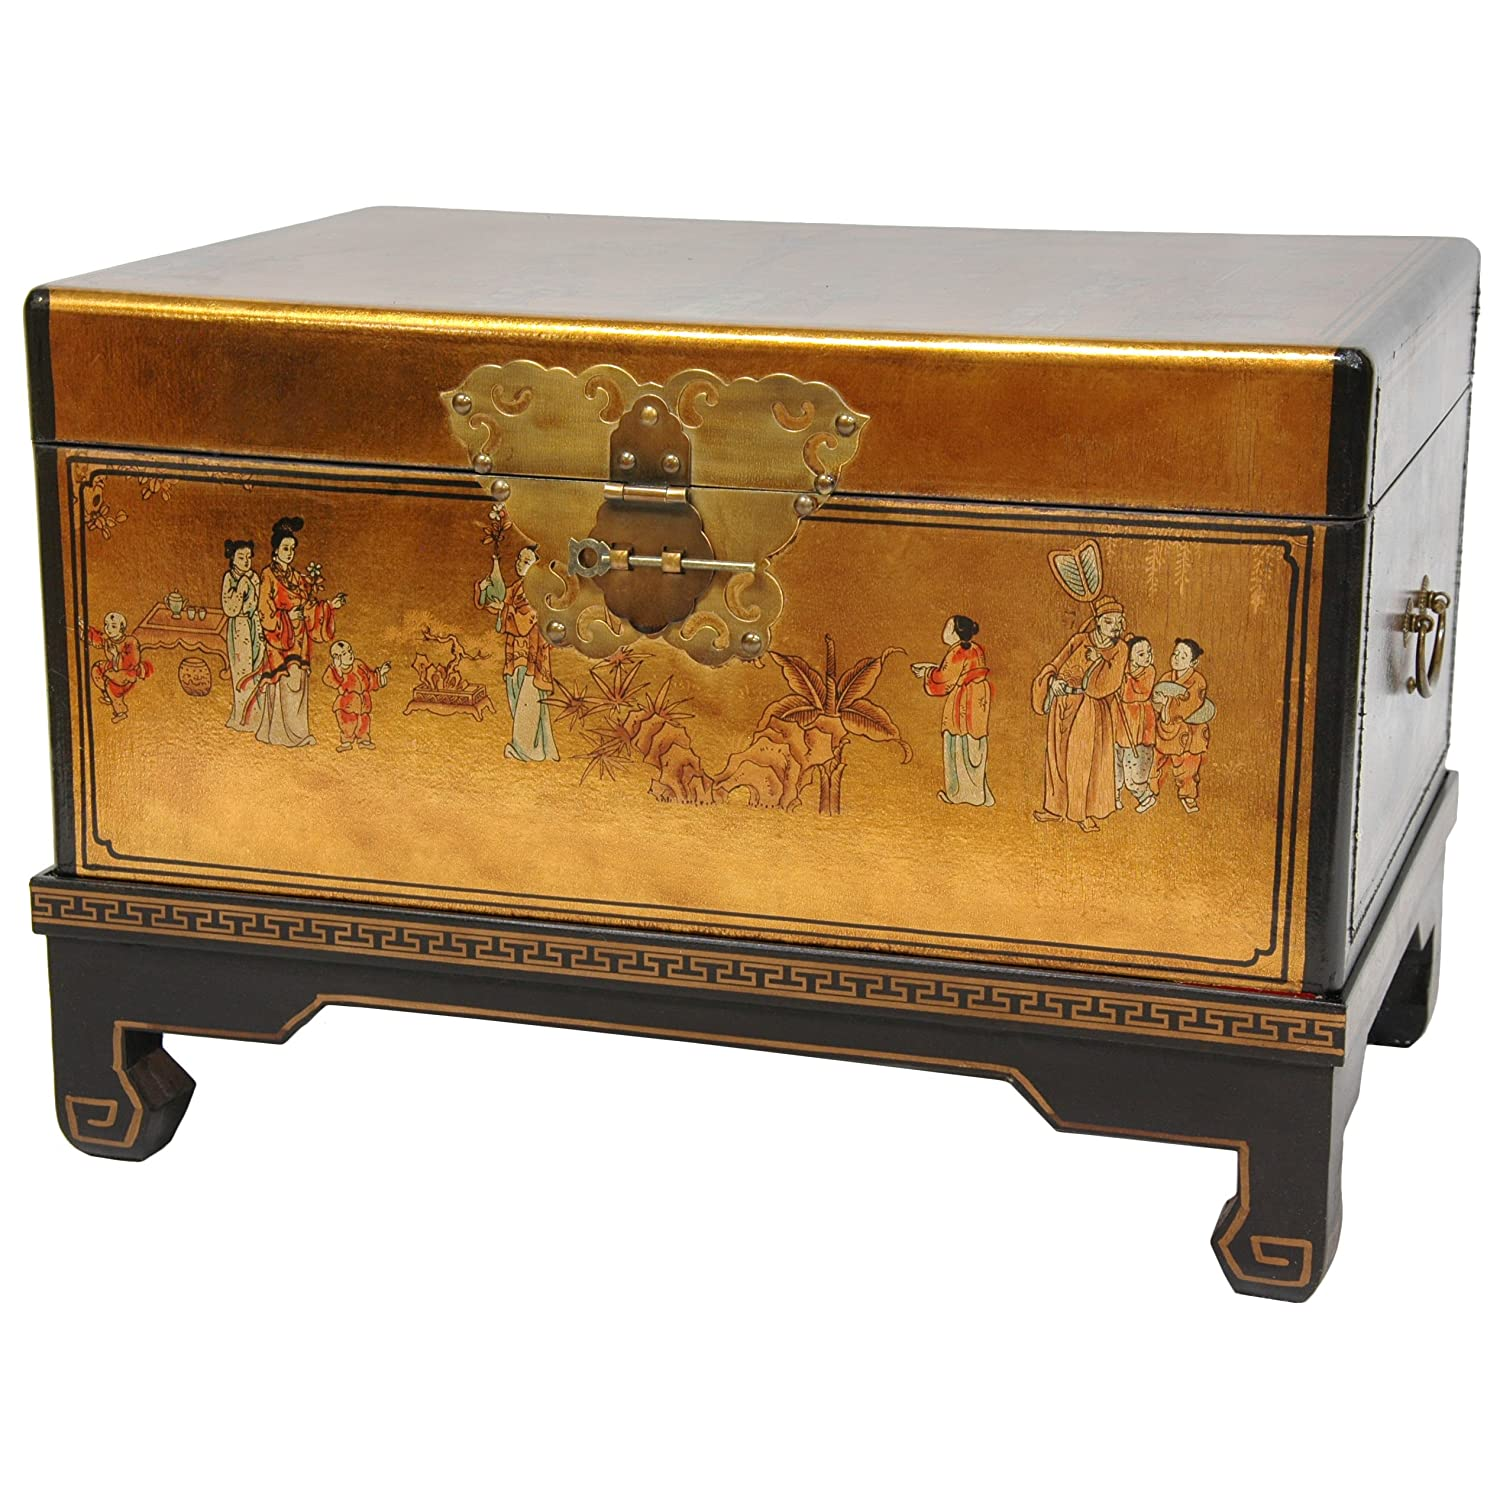 Design Lacquered Furniture amazon com oriental furniture gold leaf small trunk kitchen dining